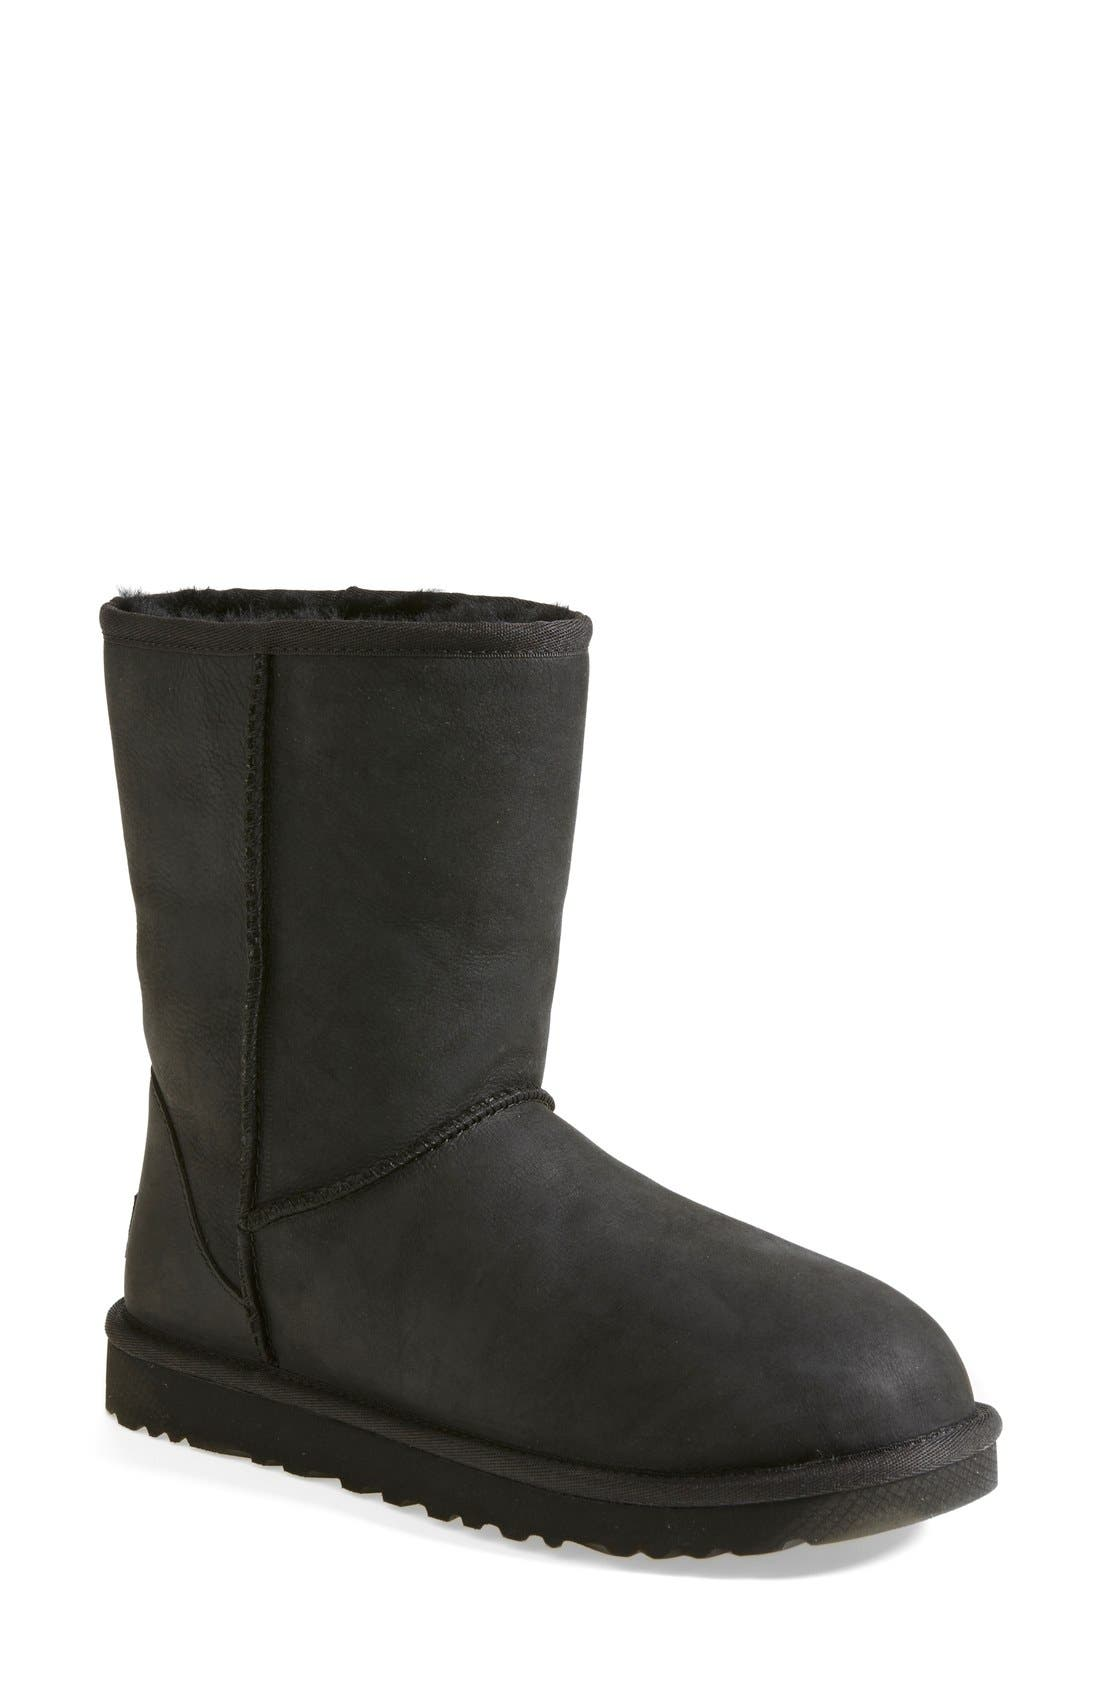 Main Image - UGG® 'Classic Short' Leather Water Resistant Boot (Women)